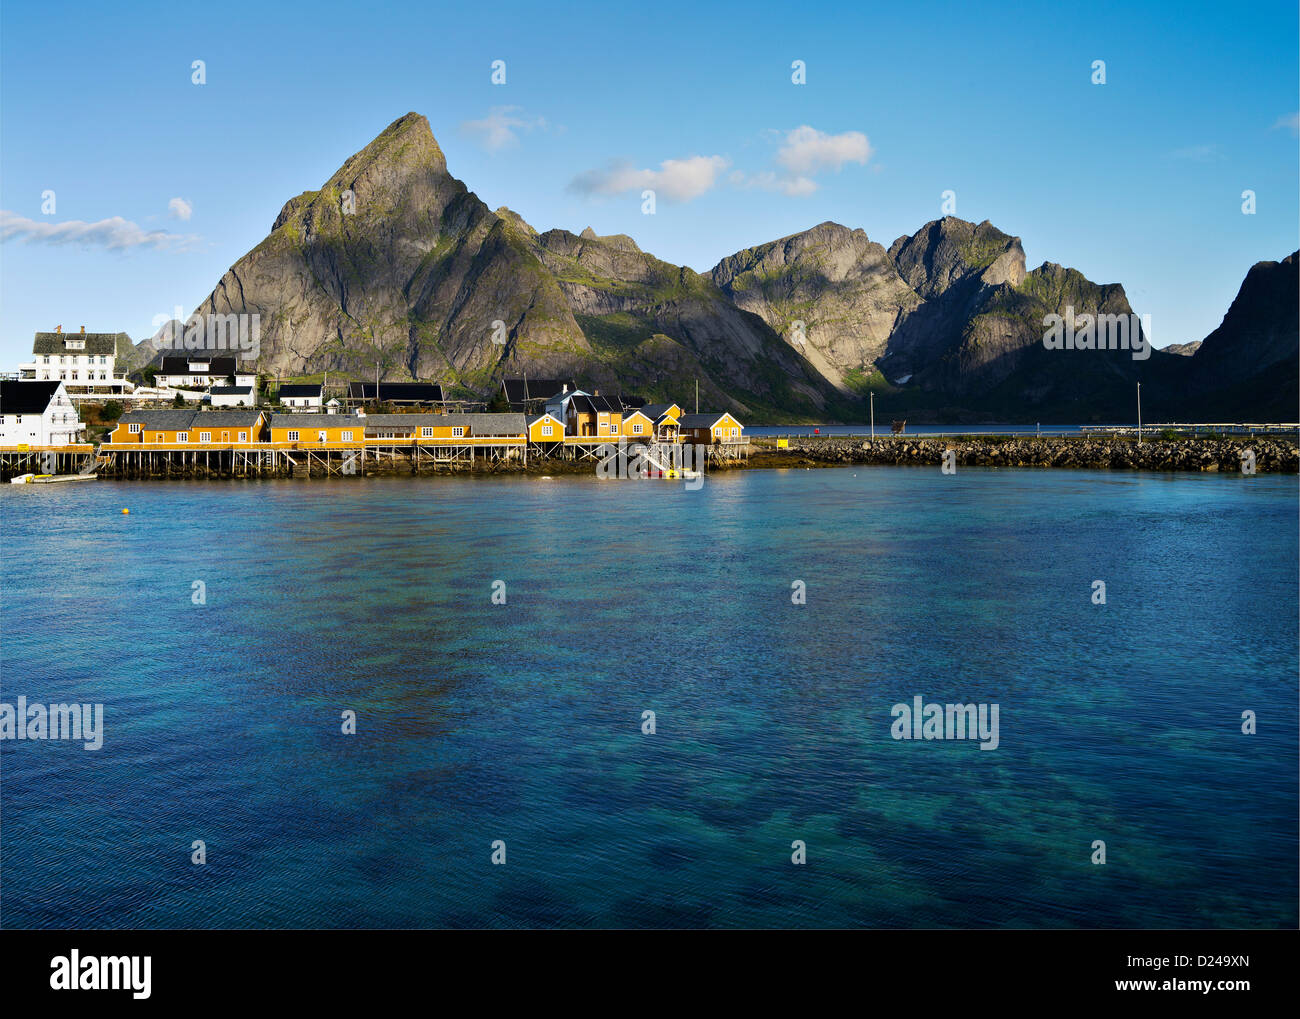 Cabins and stores on the island of Sakrisoy under the dramatic peak of Olstinden, Lofoten, arctic Norway. Stock Photo